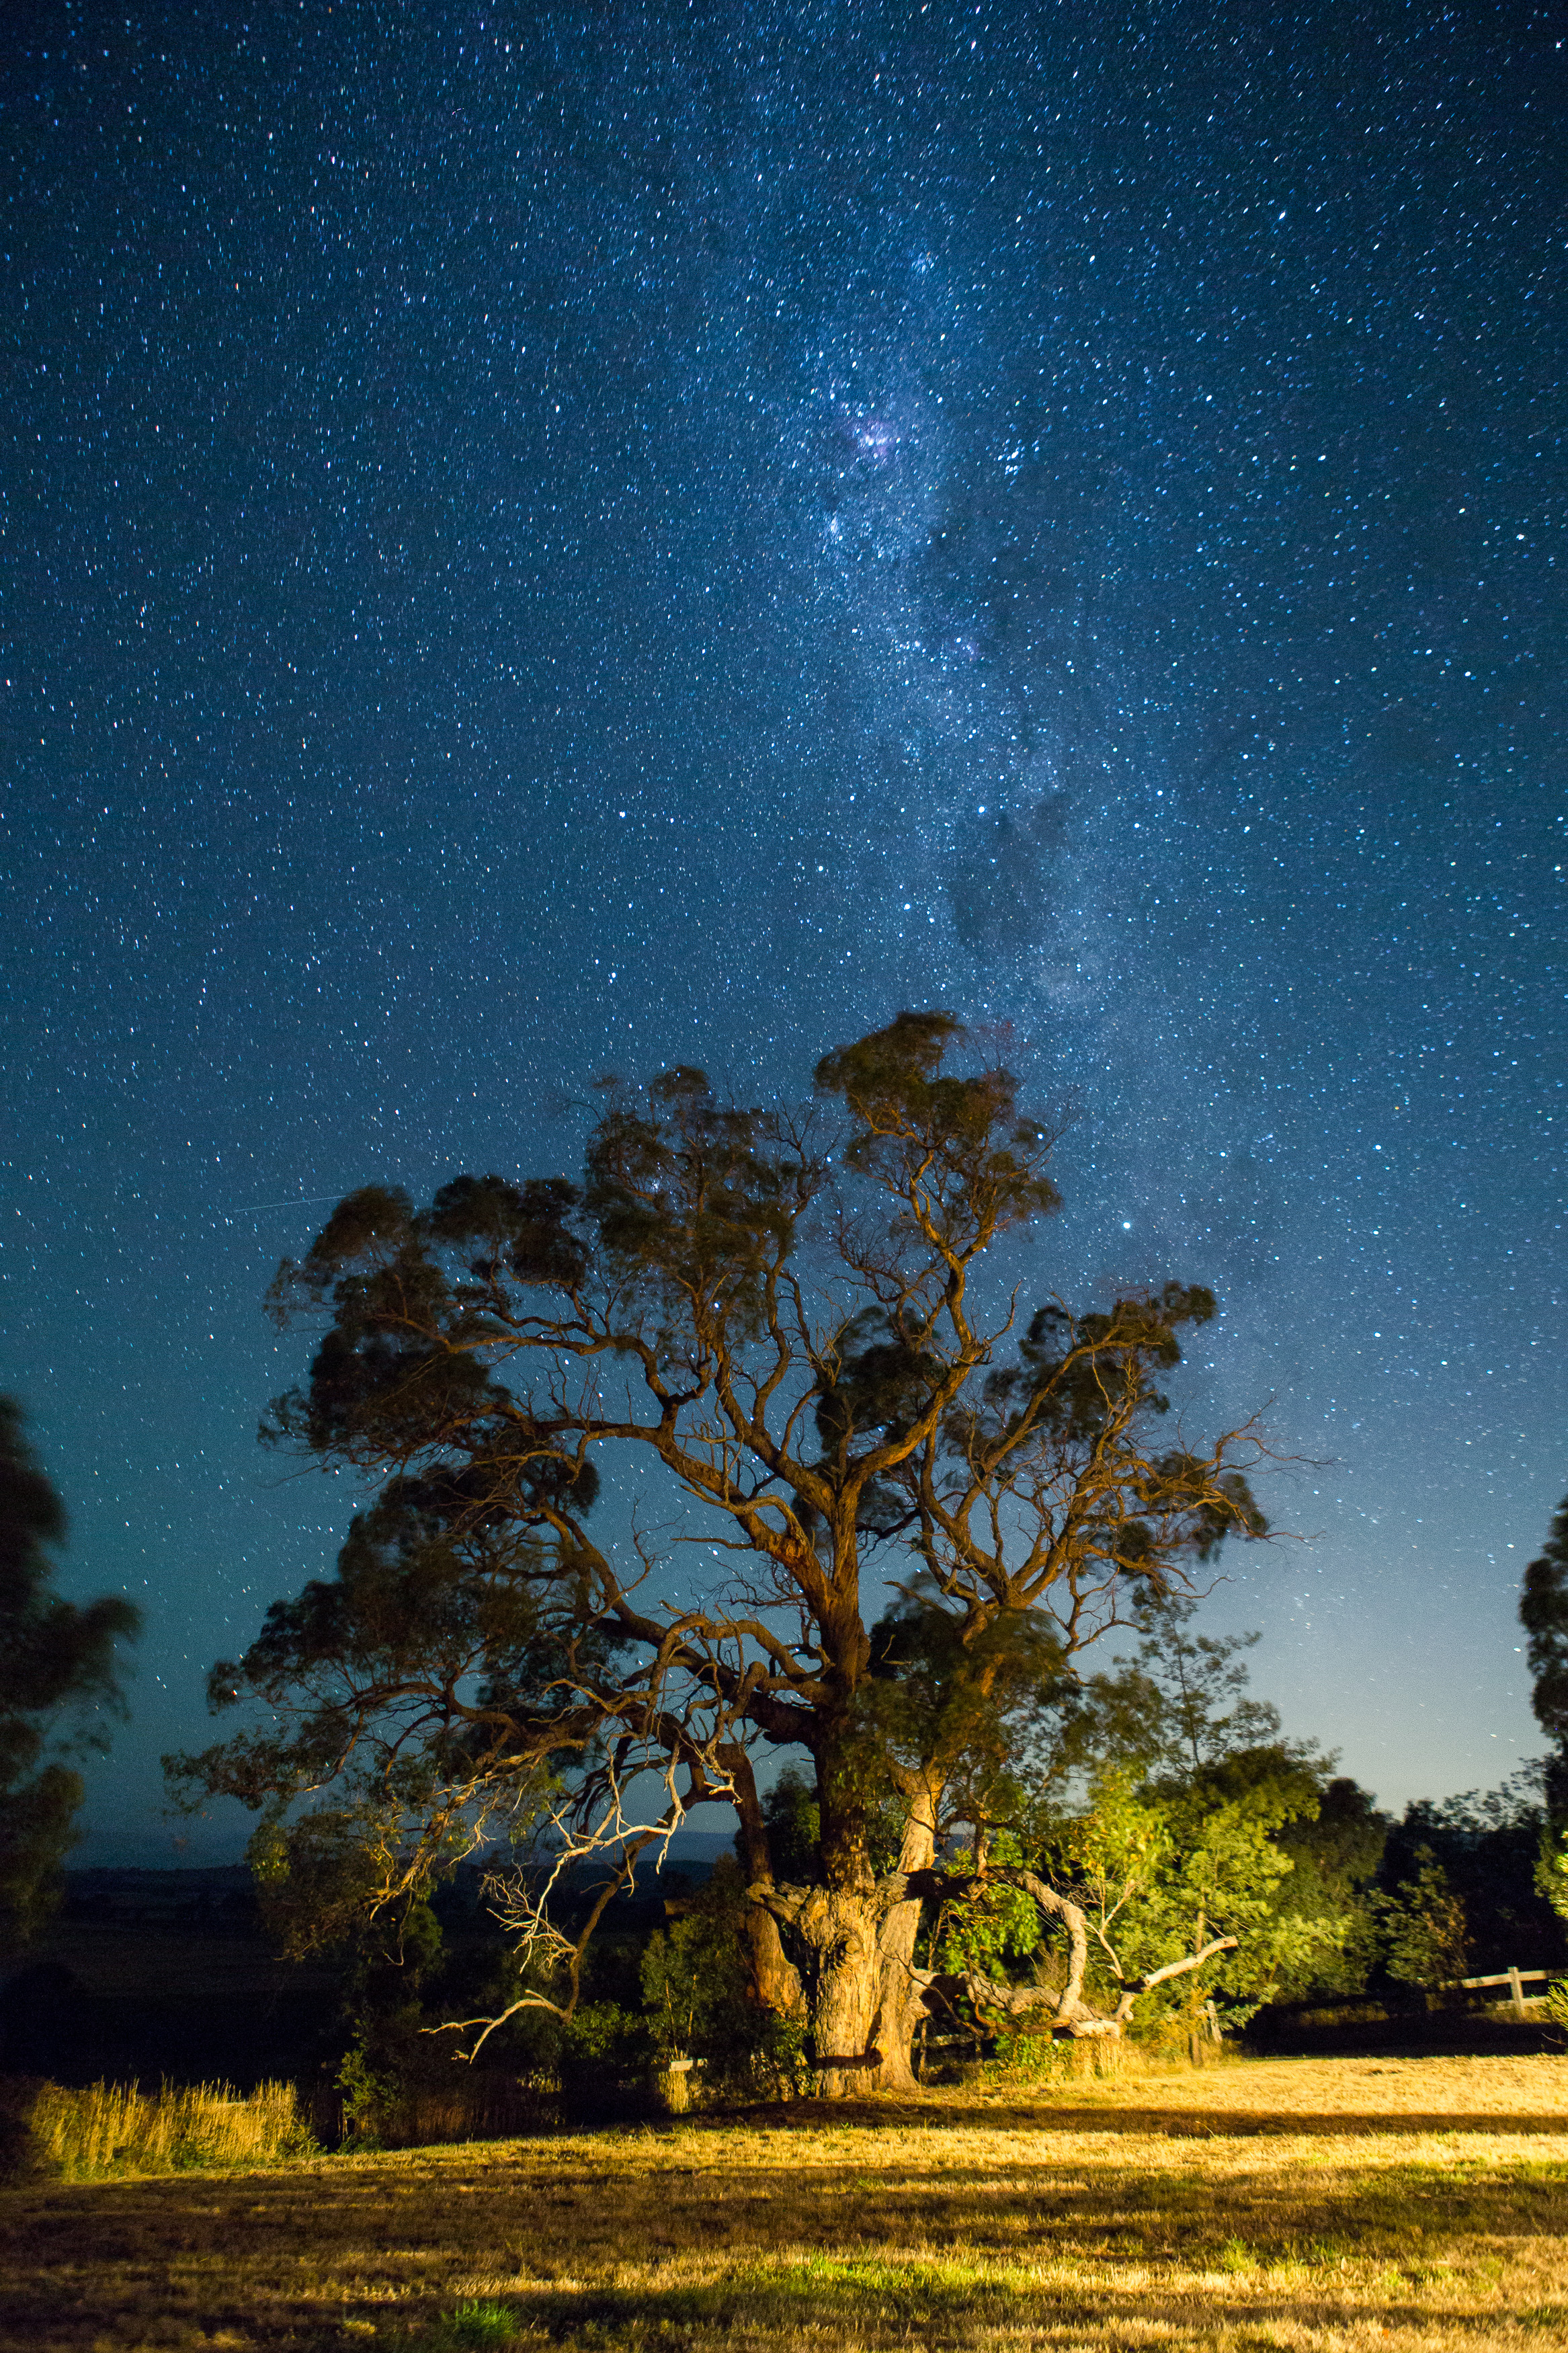 The view from the porch. The glow from Melbourne is in the lower right.